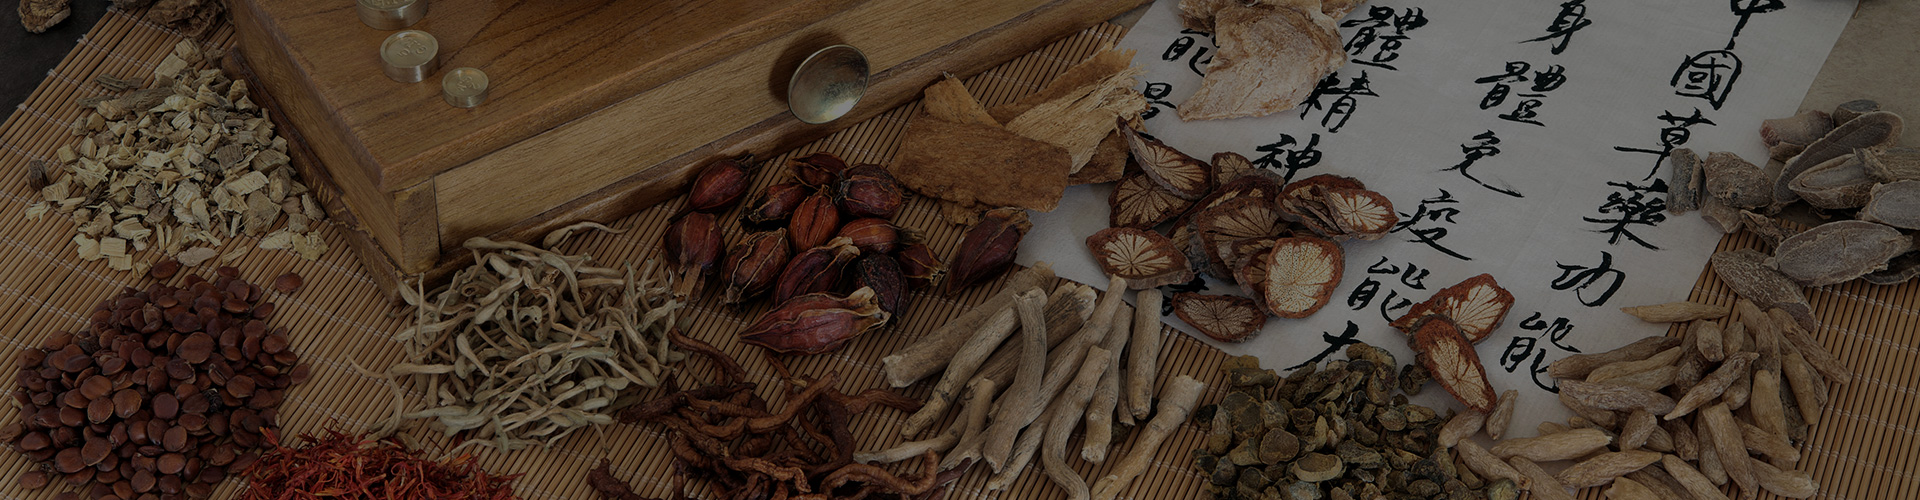 Traditional Chinese Medicine - Natural Health Improvement ...